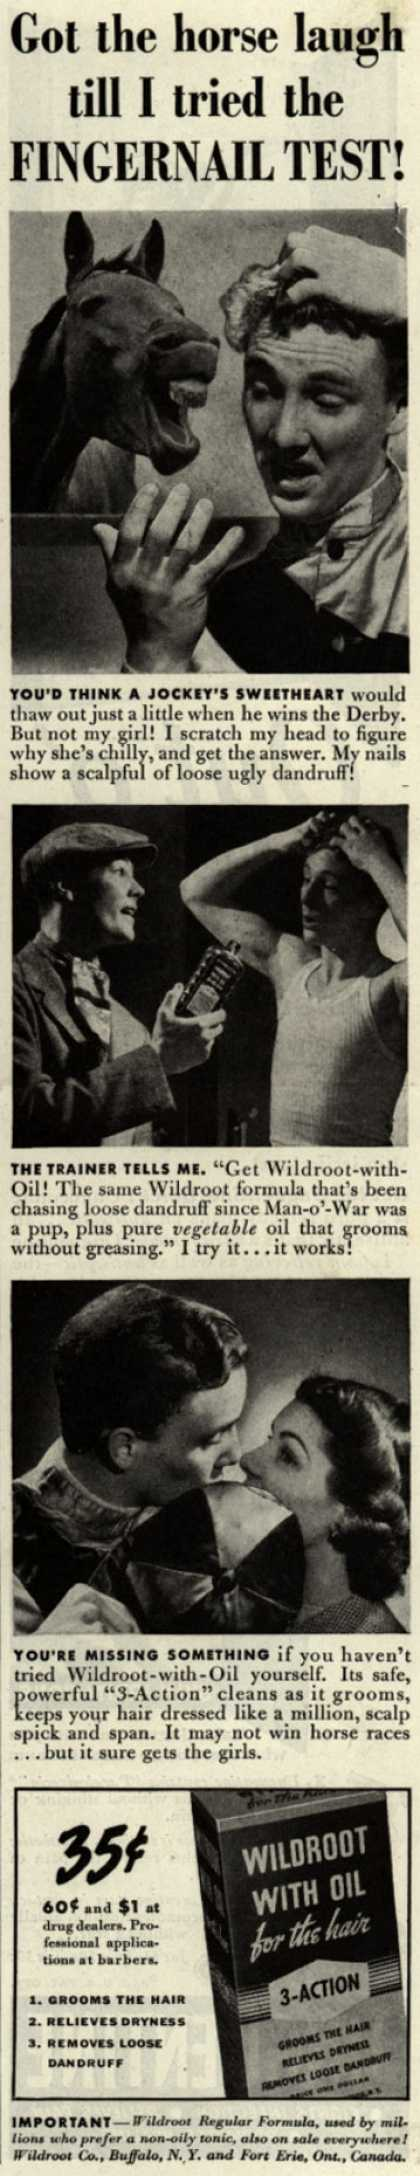 Wildroot Company's Wildroot with Oil – Got the horse laugh till I tried the Fingernail Test (1940)